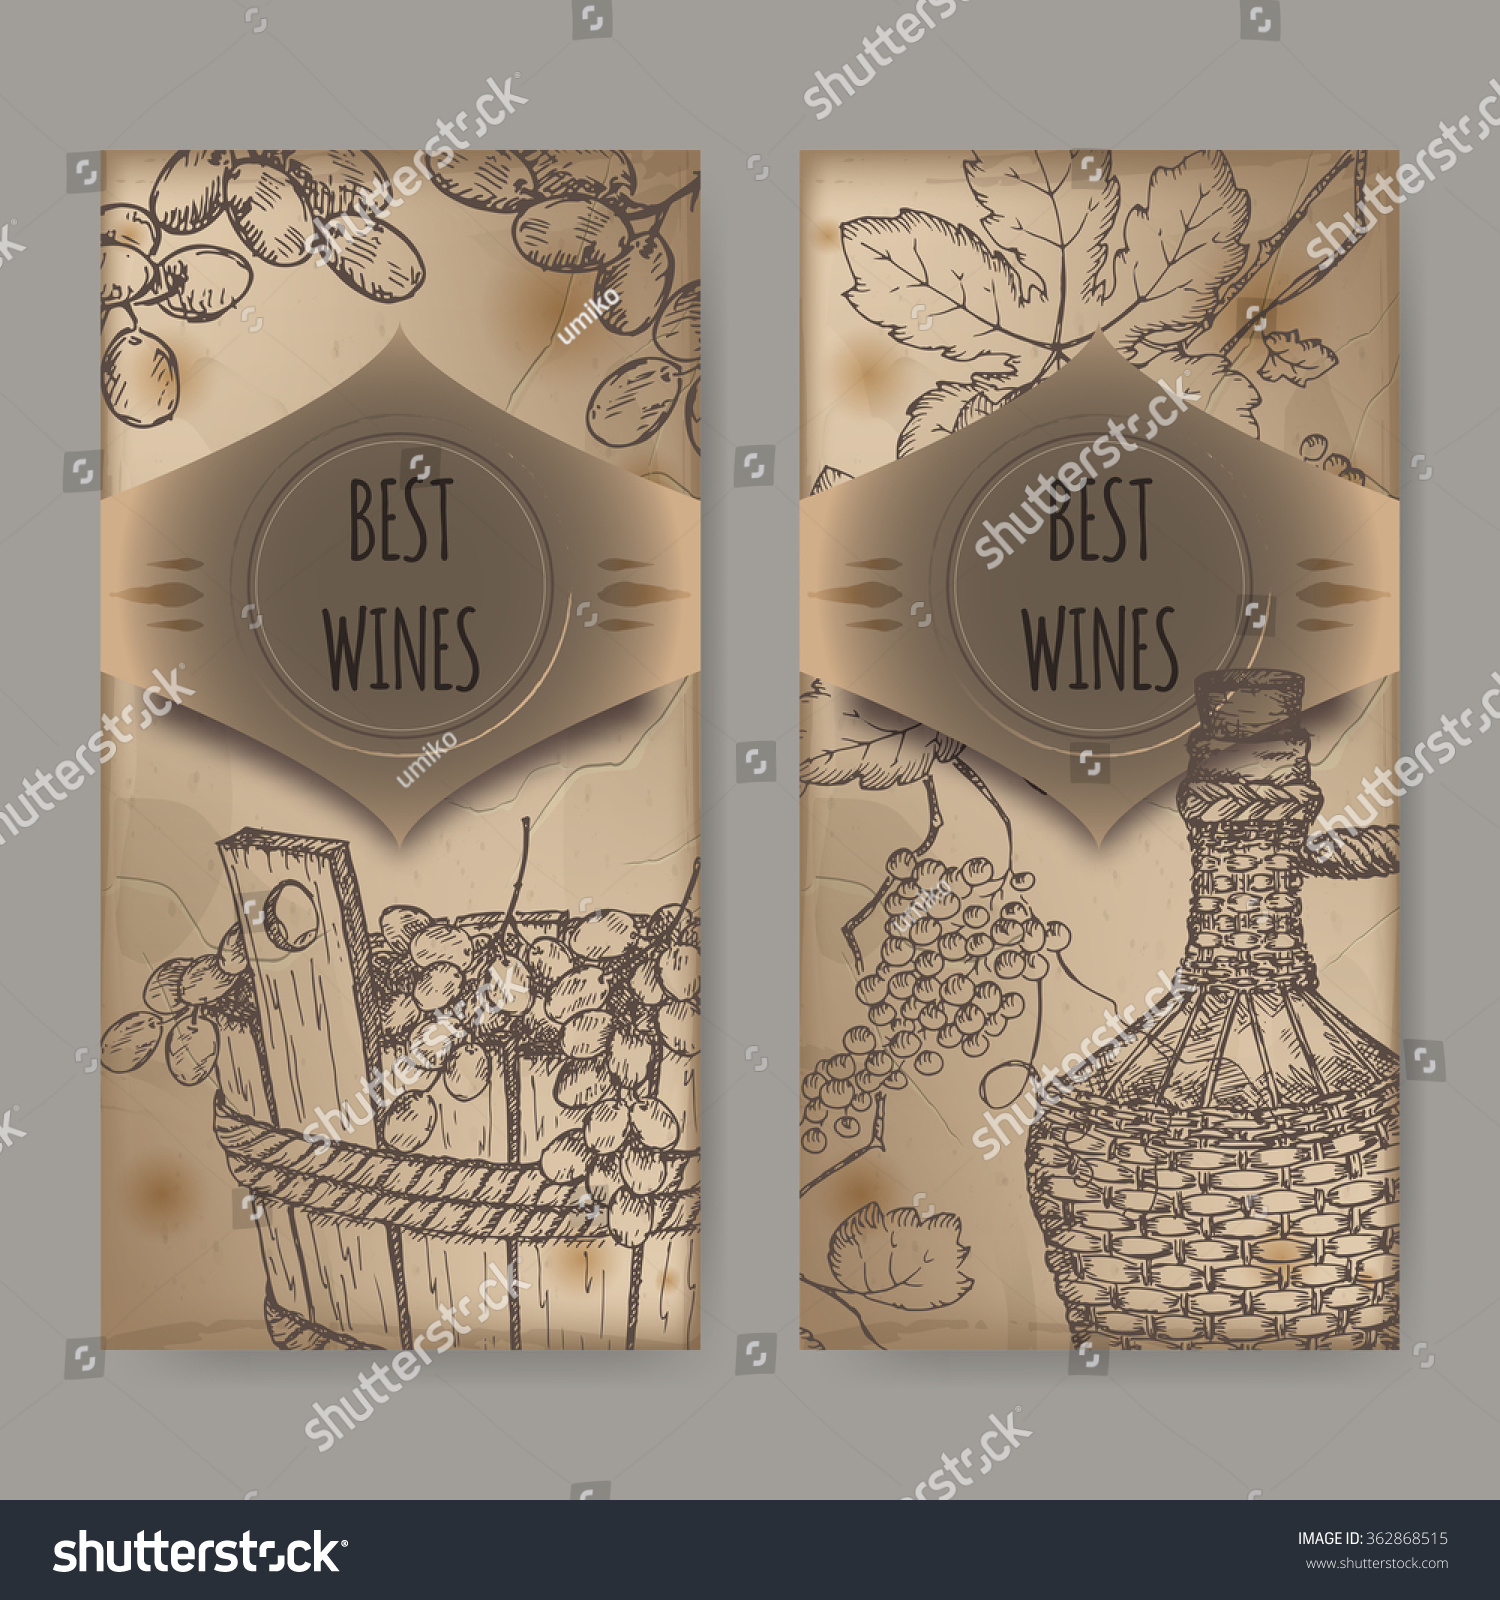 Set 2 Vintage Wine Label Templates Stock Vector (2018) 362868515 ...